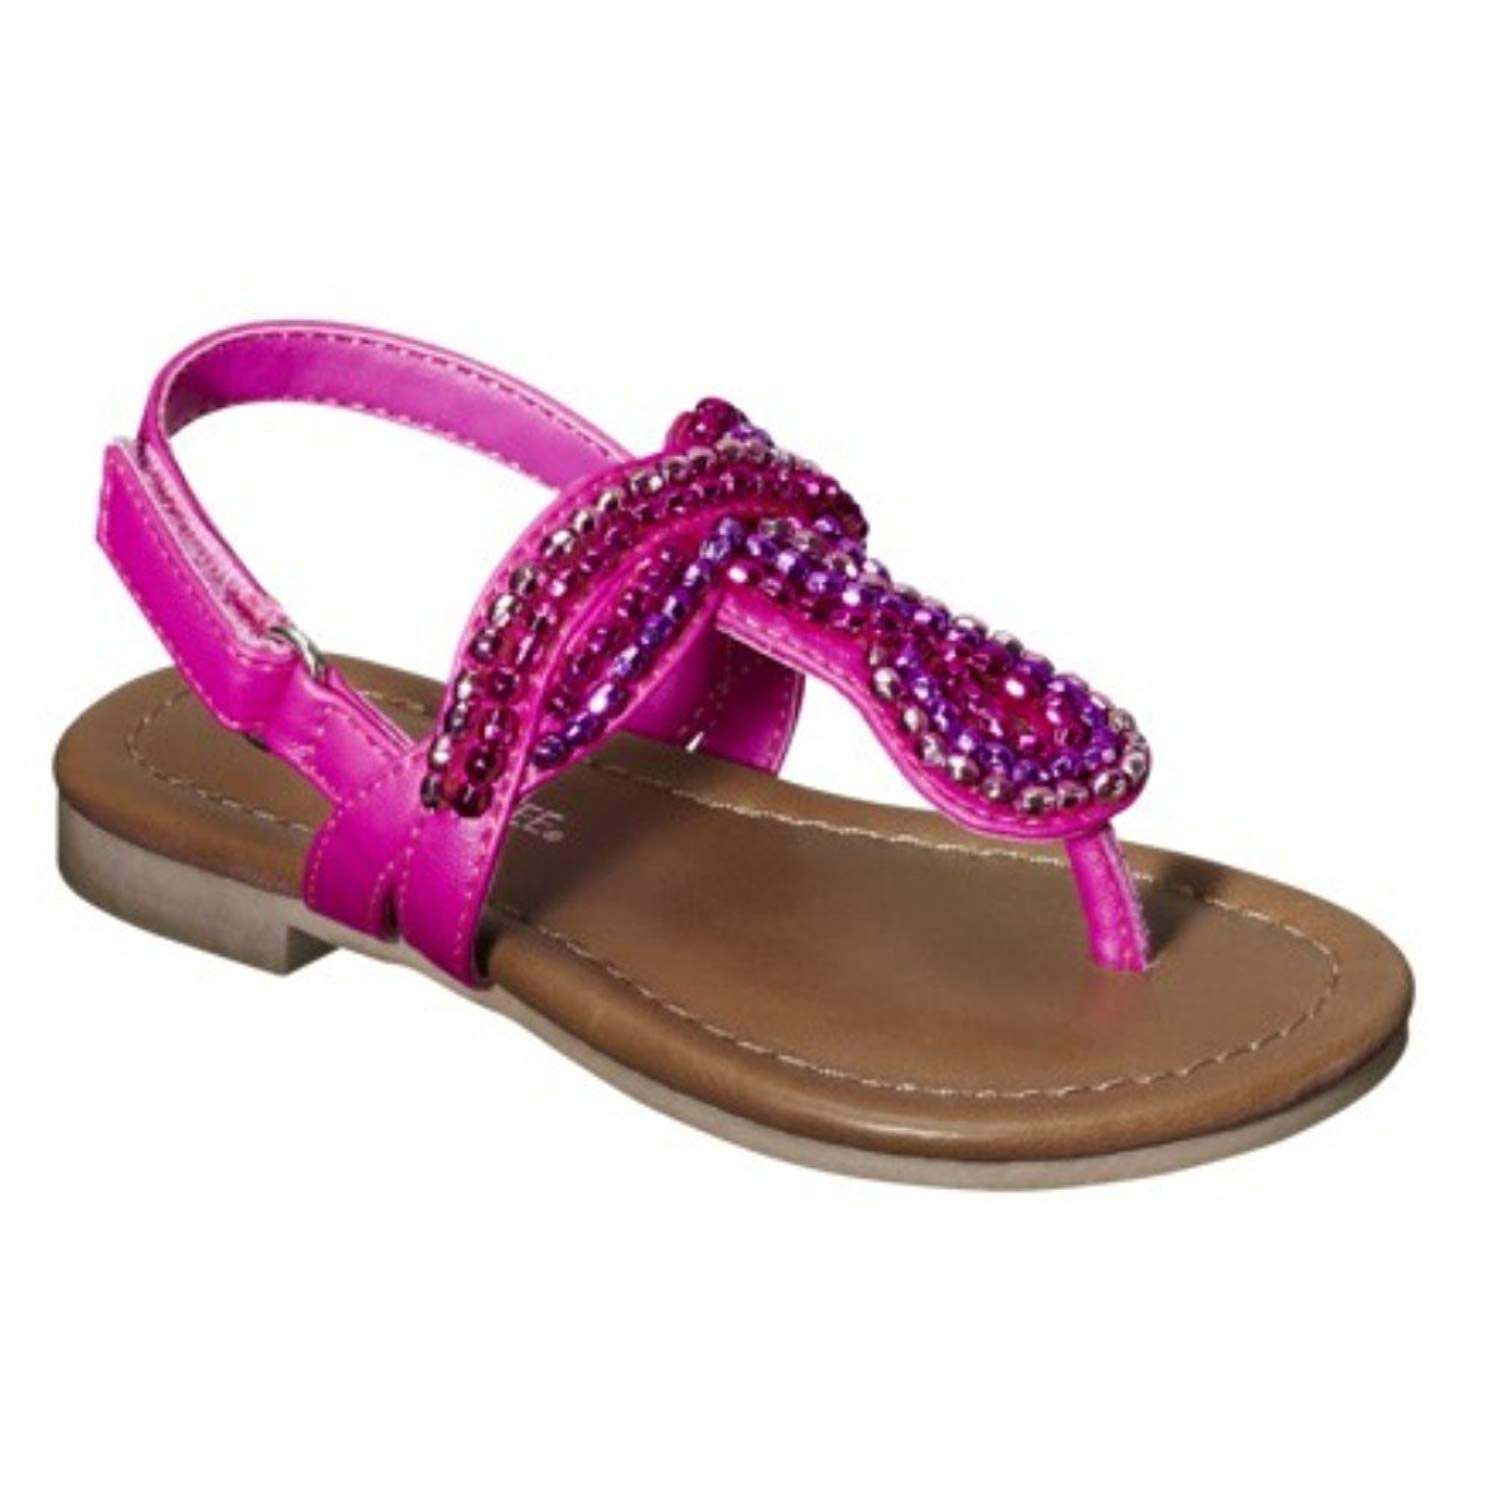 a5e55495cda5 Get Quotations · Cherokee Jumper Toddler Girls Pink Beaded Thong Style  Sandals